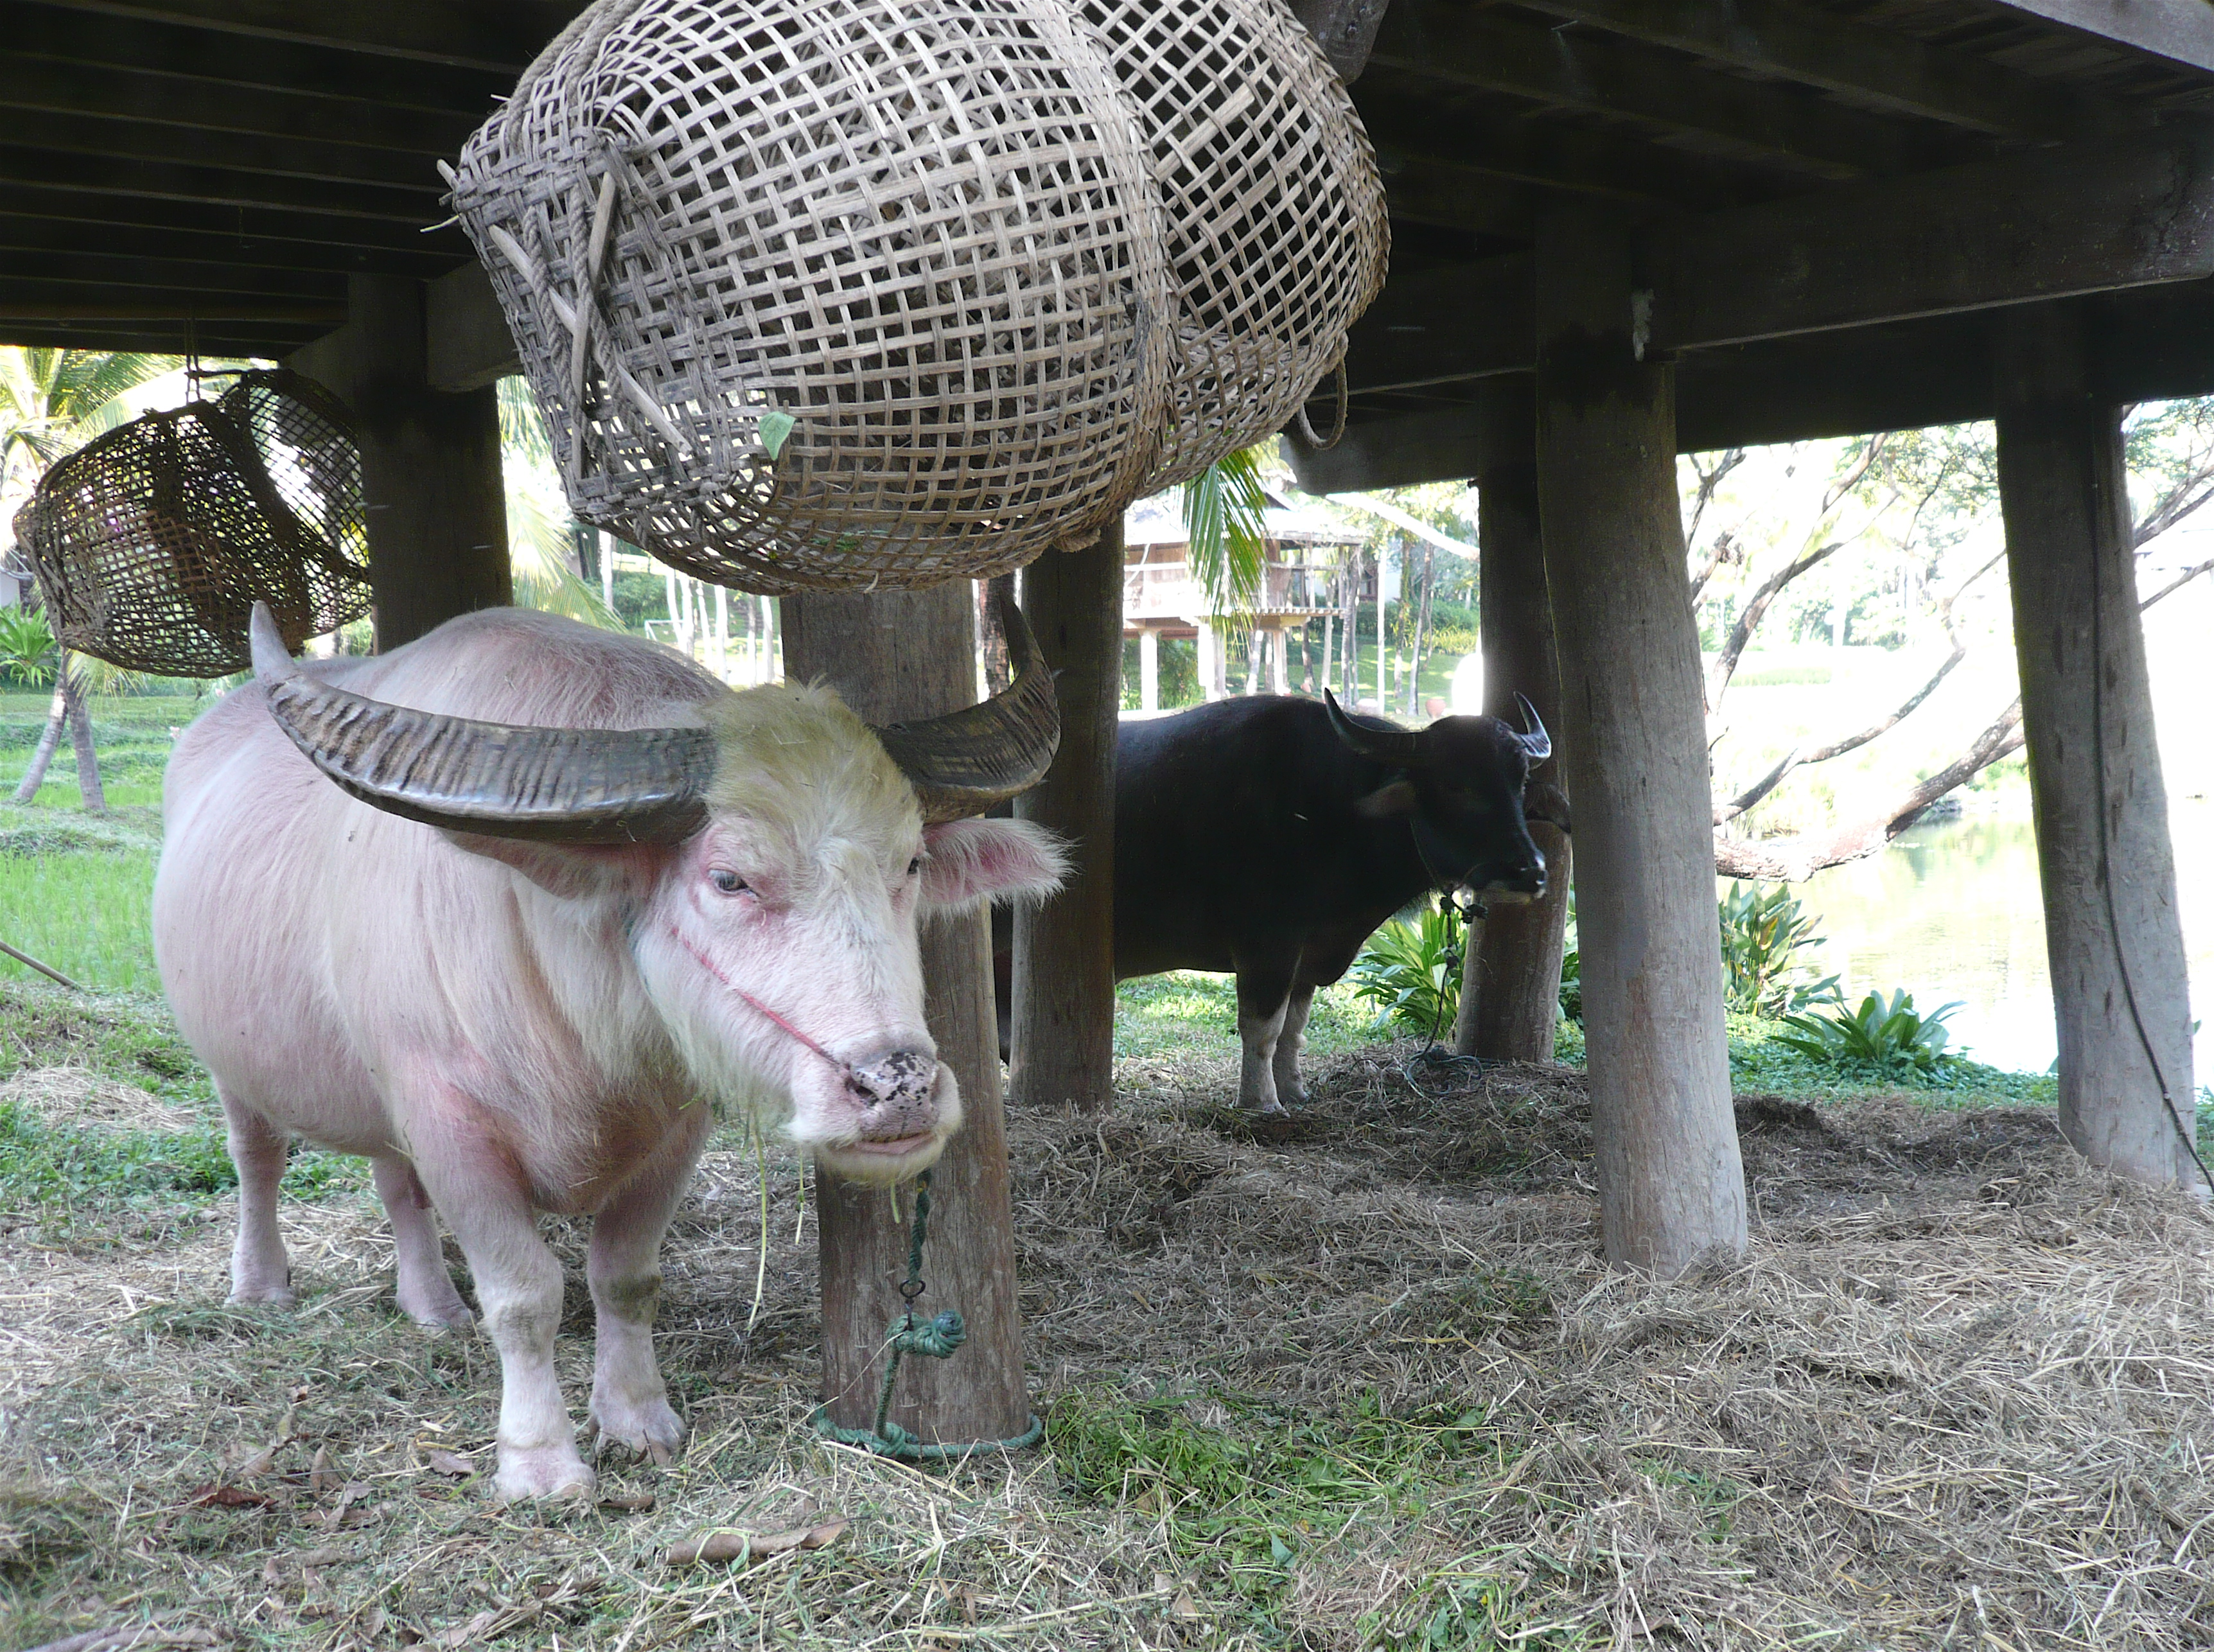 http://upload.wikimedia.org/wikipedia/commons/6/6b/Albino_Water_Buffalo,_Chiang_Mai.jpg